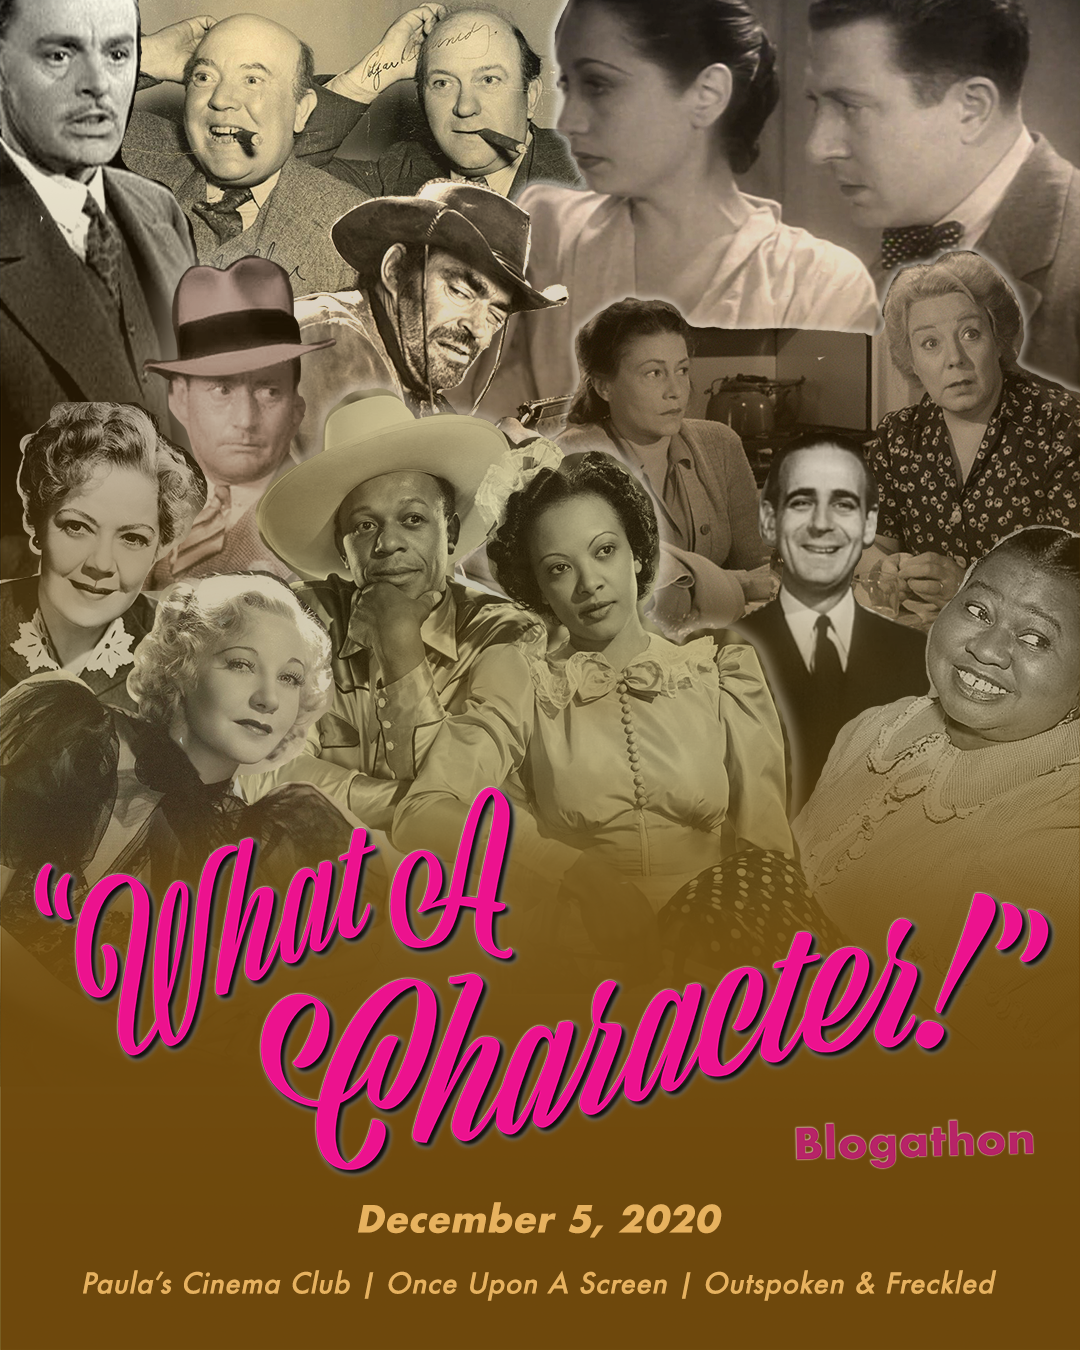 9th WHAT A CHARACTER! Blogathon